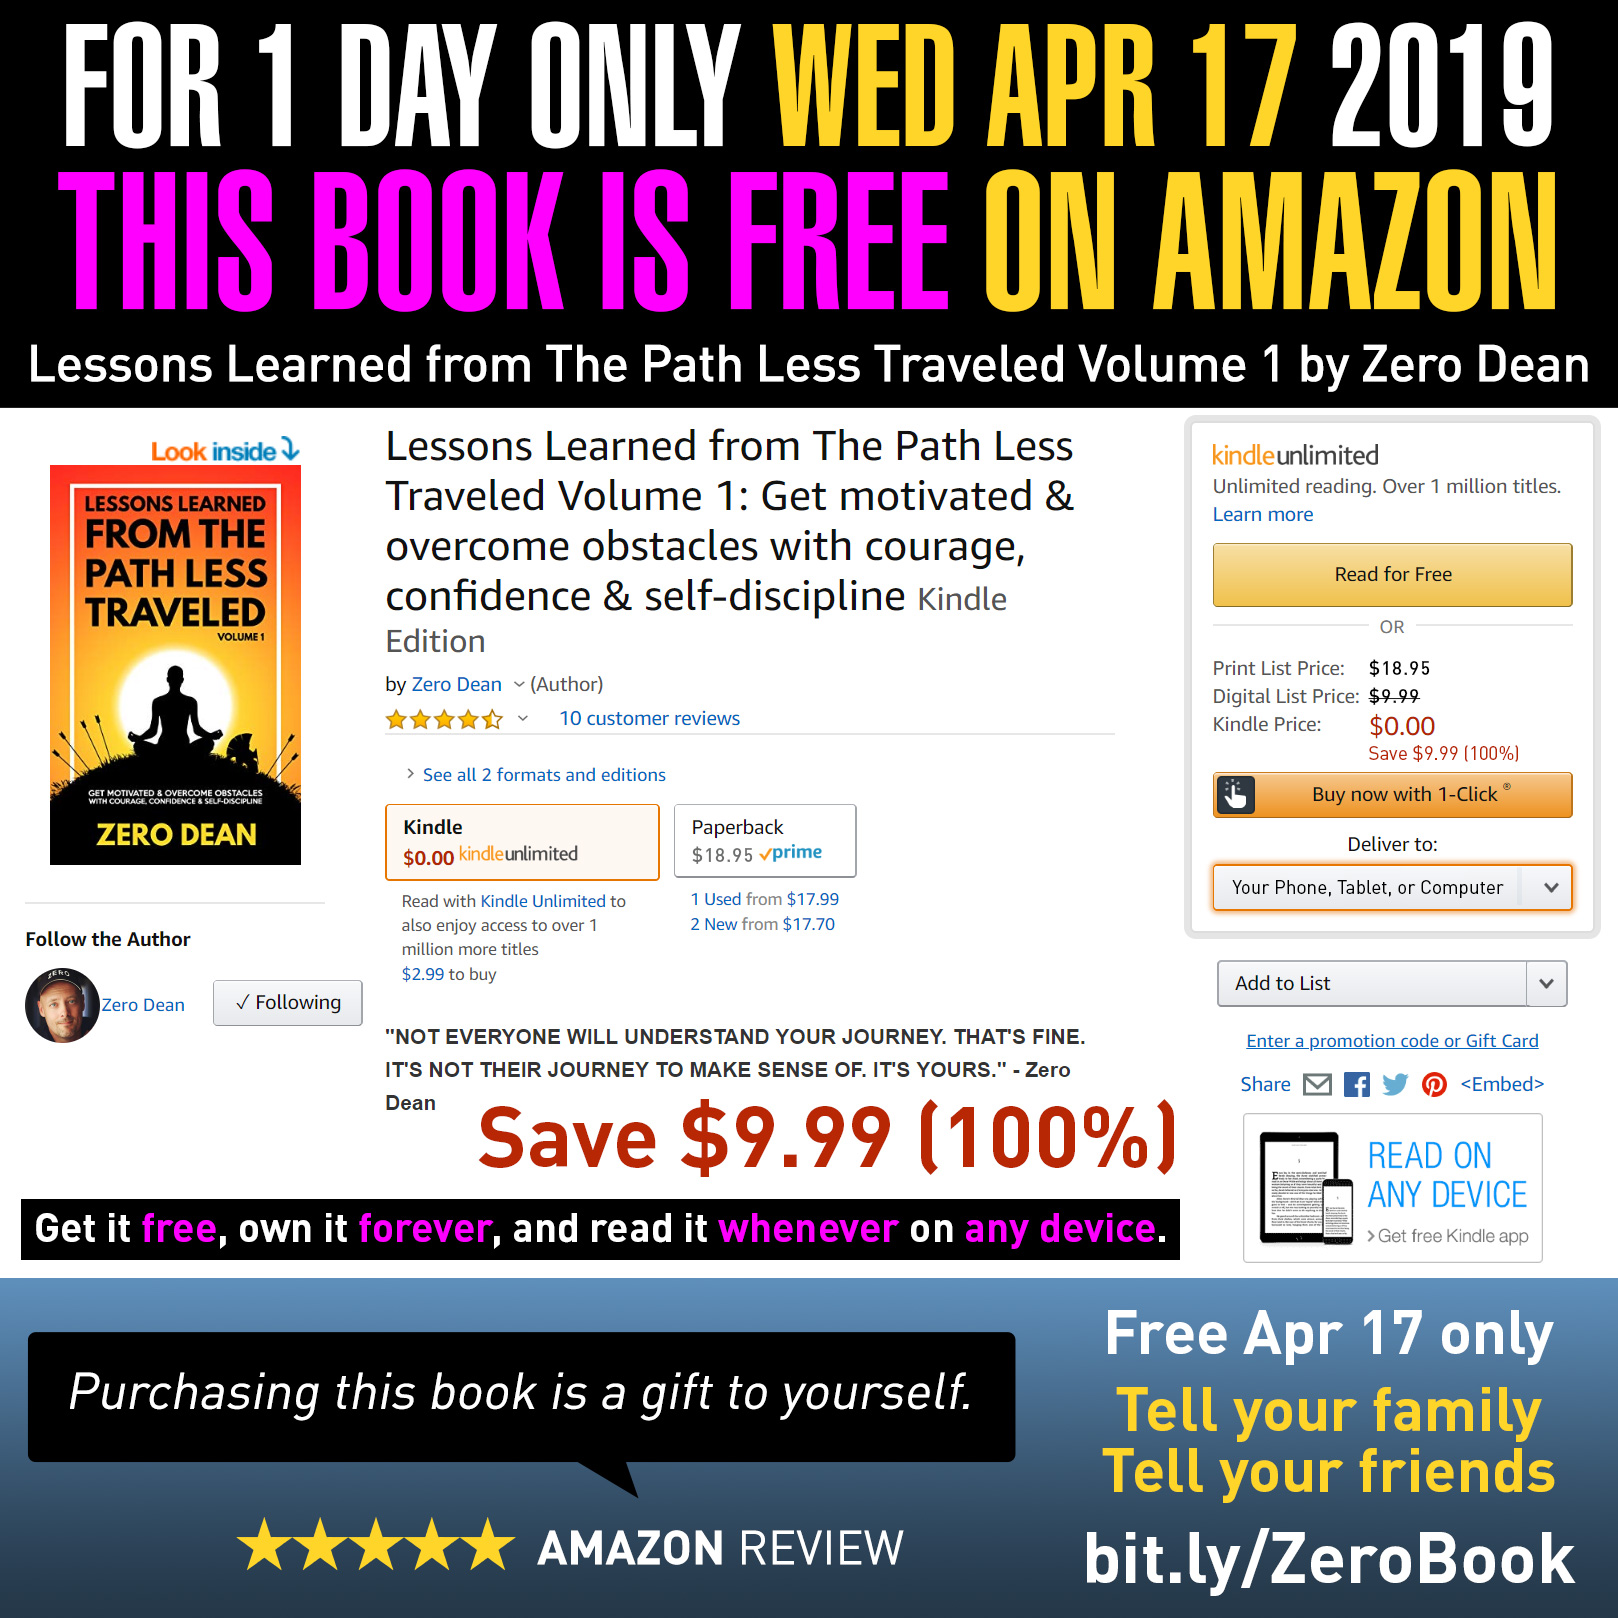 My book is free on Amazon today (4/17) only